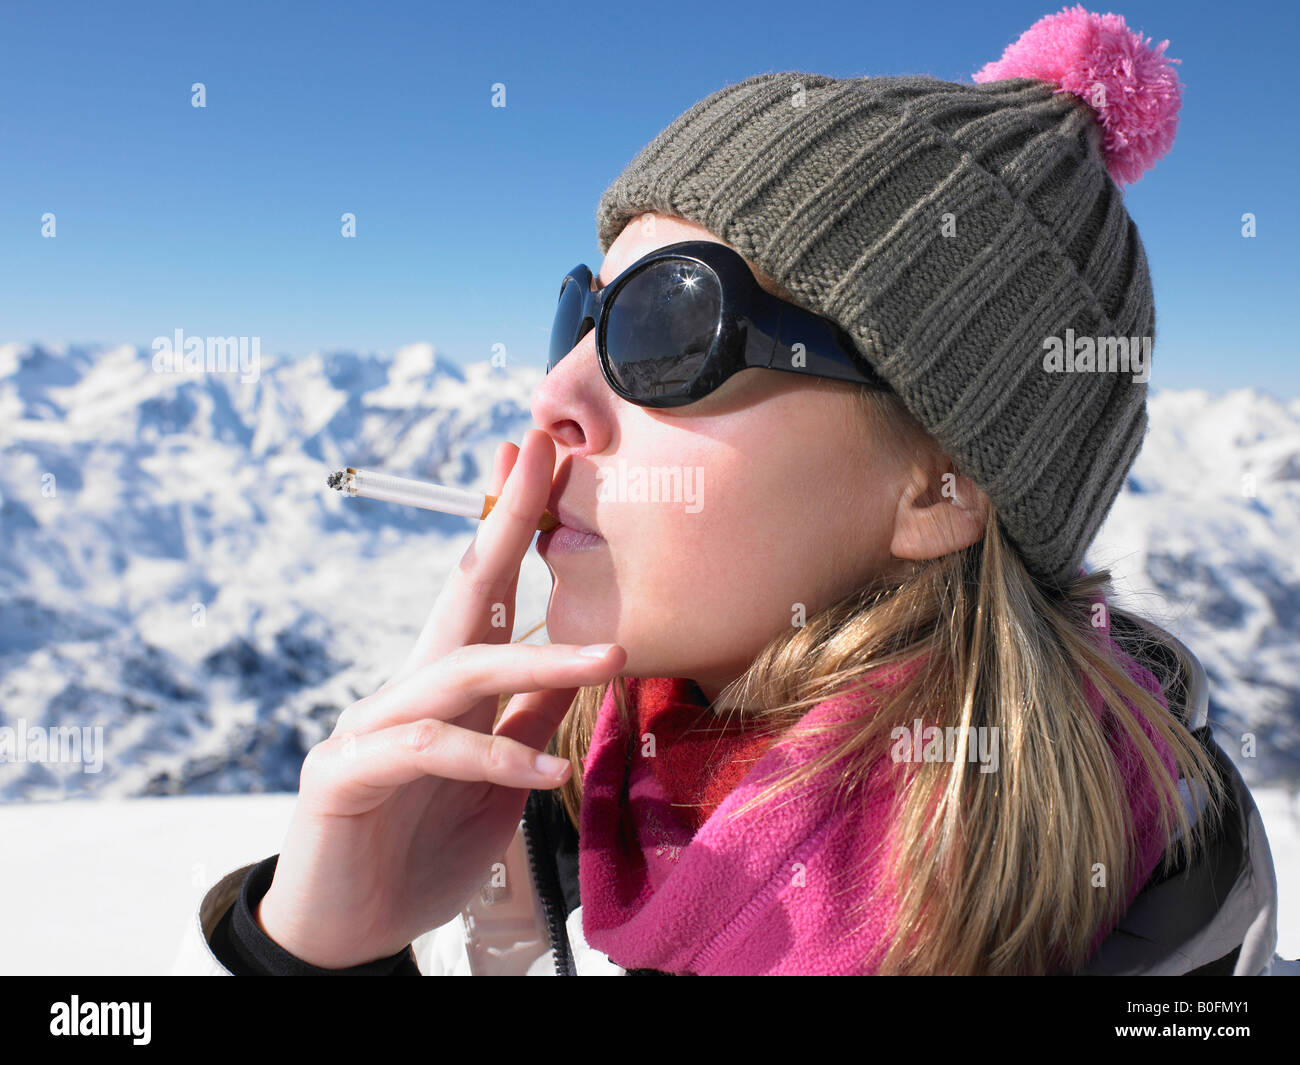 Young woman smoking in snow gear Stock Photo